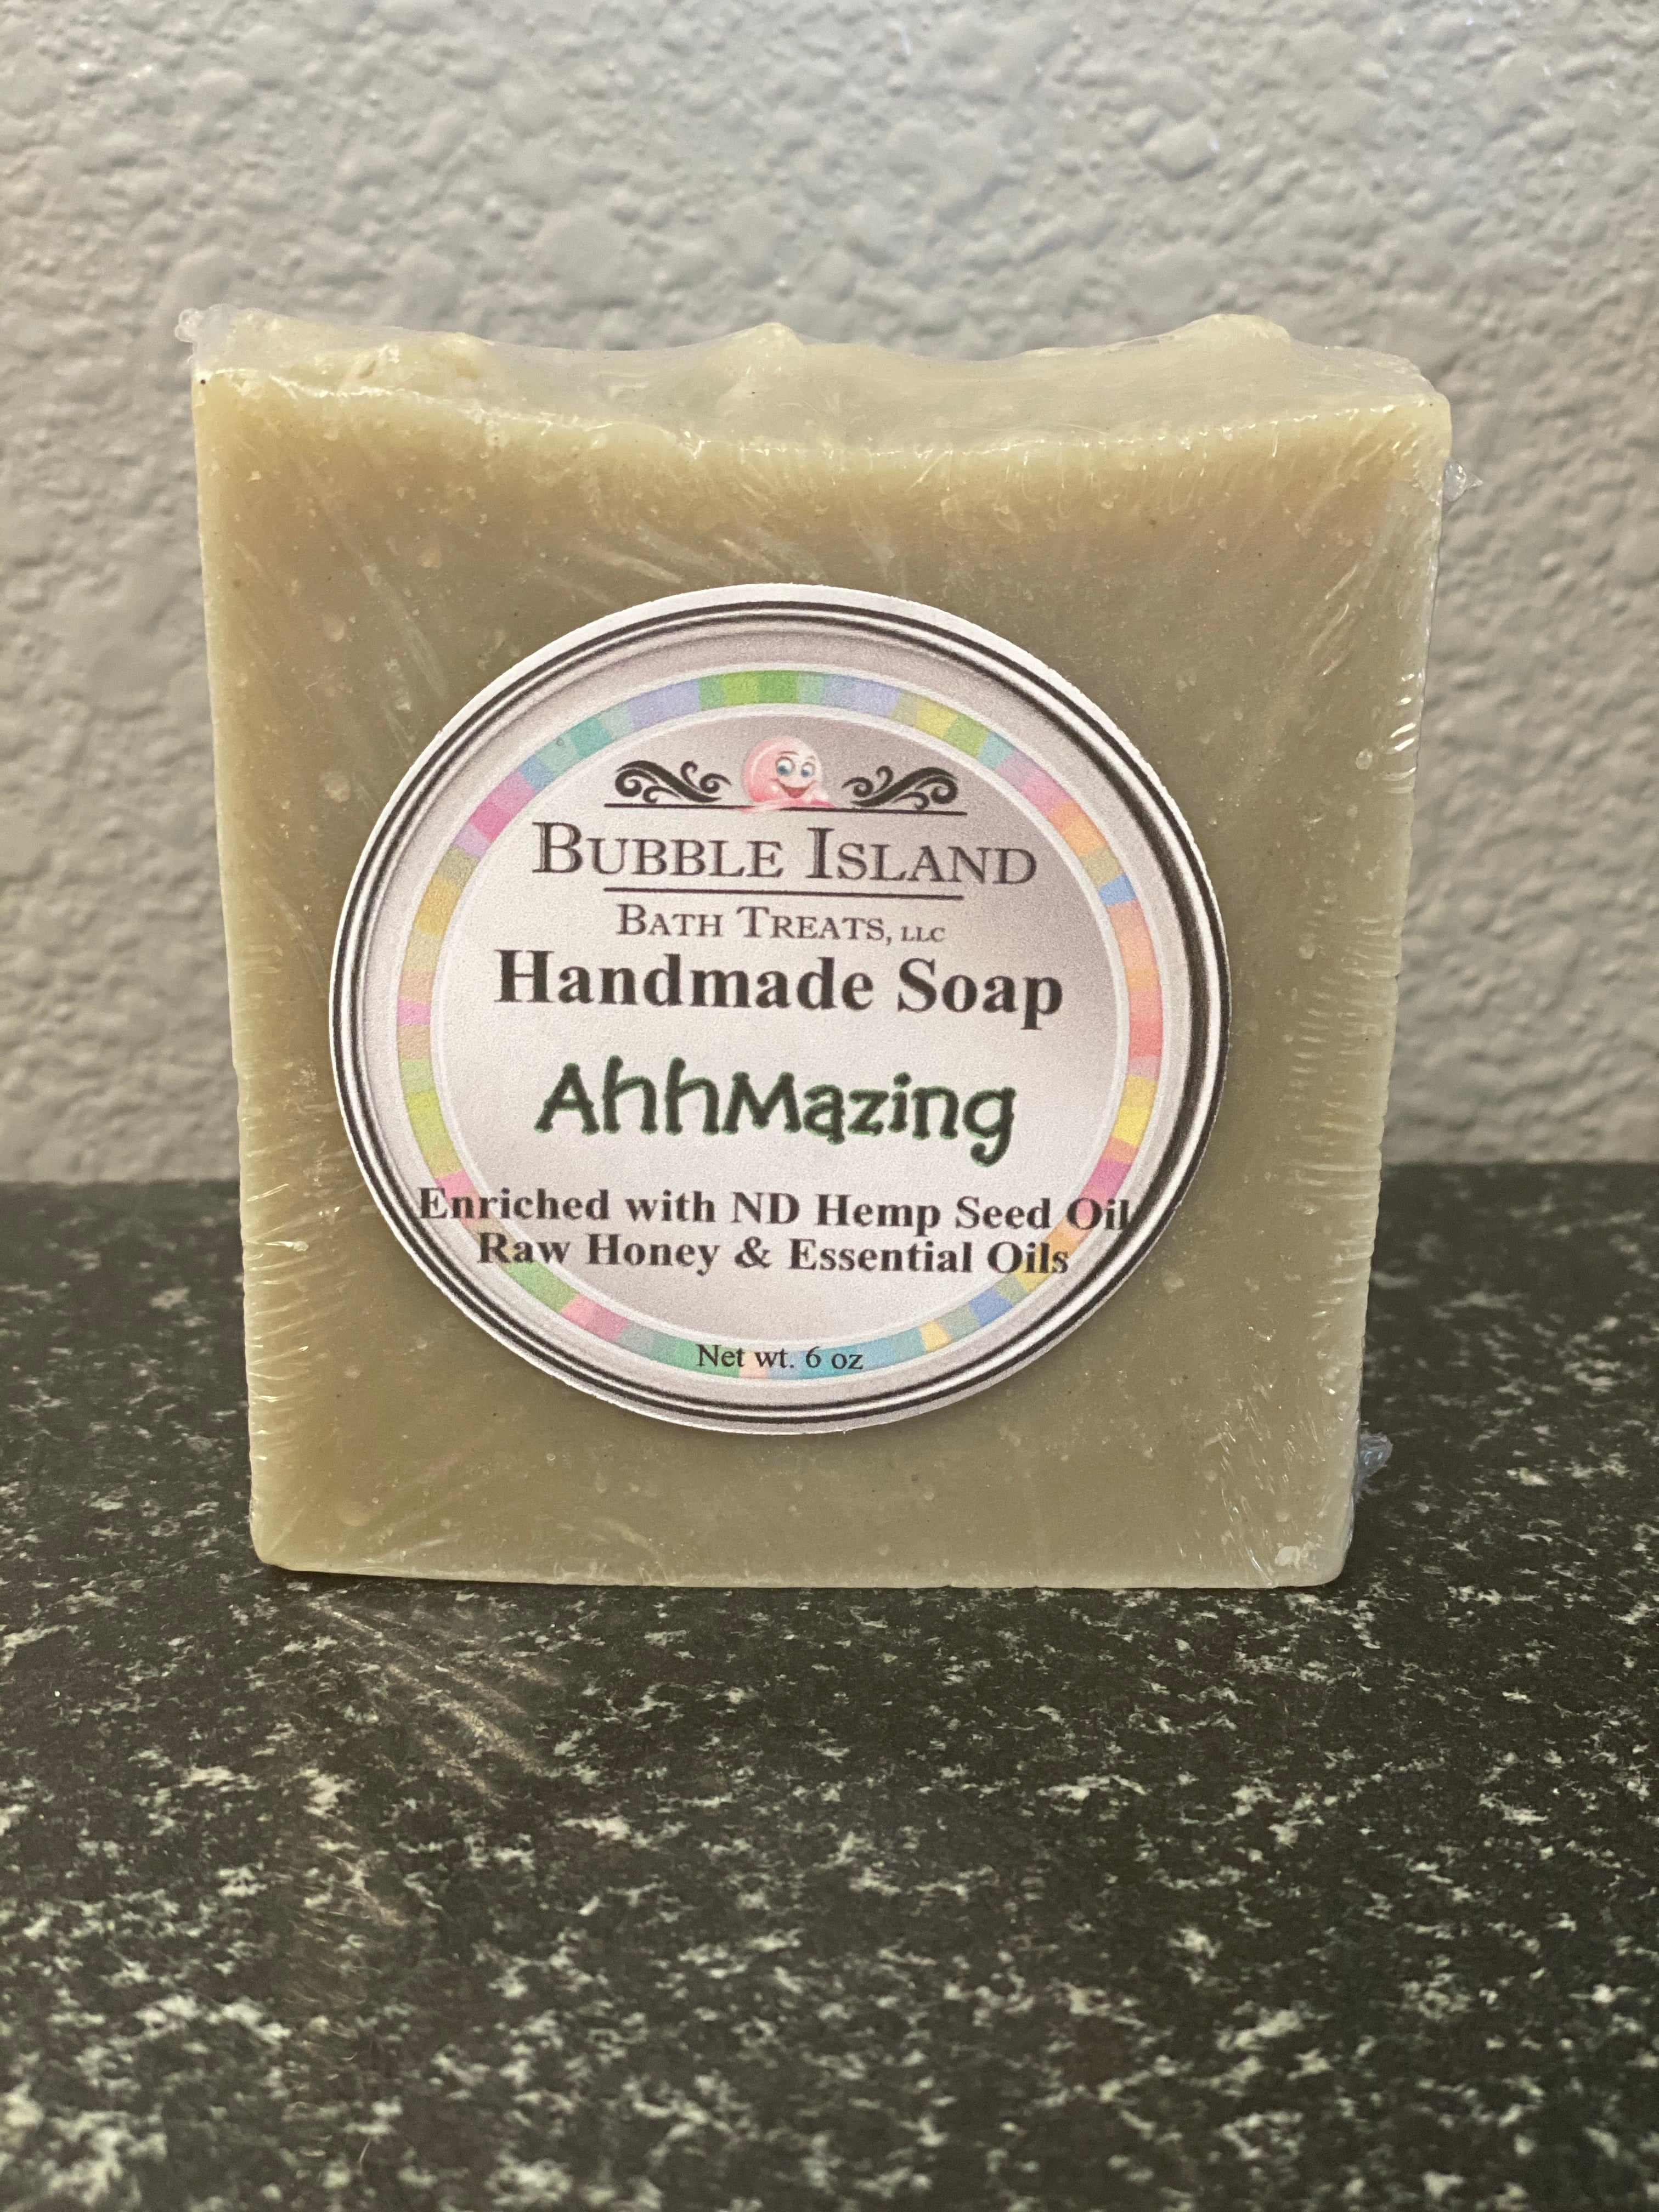 Ahhmazing Handmade Soap